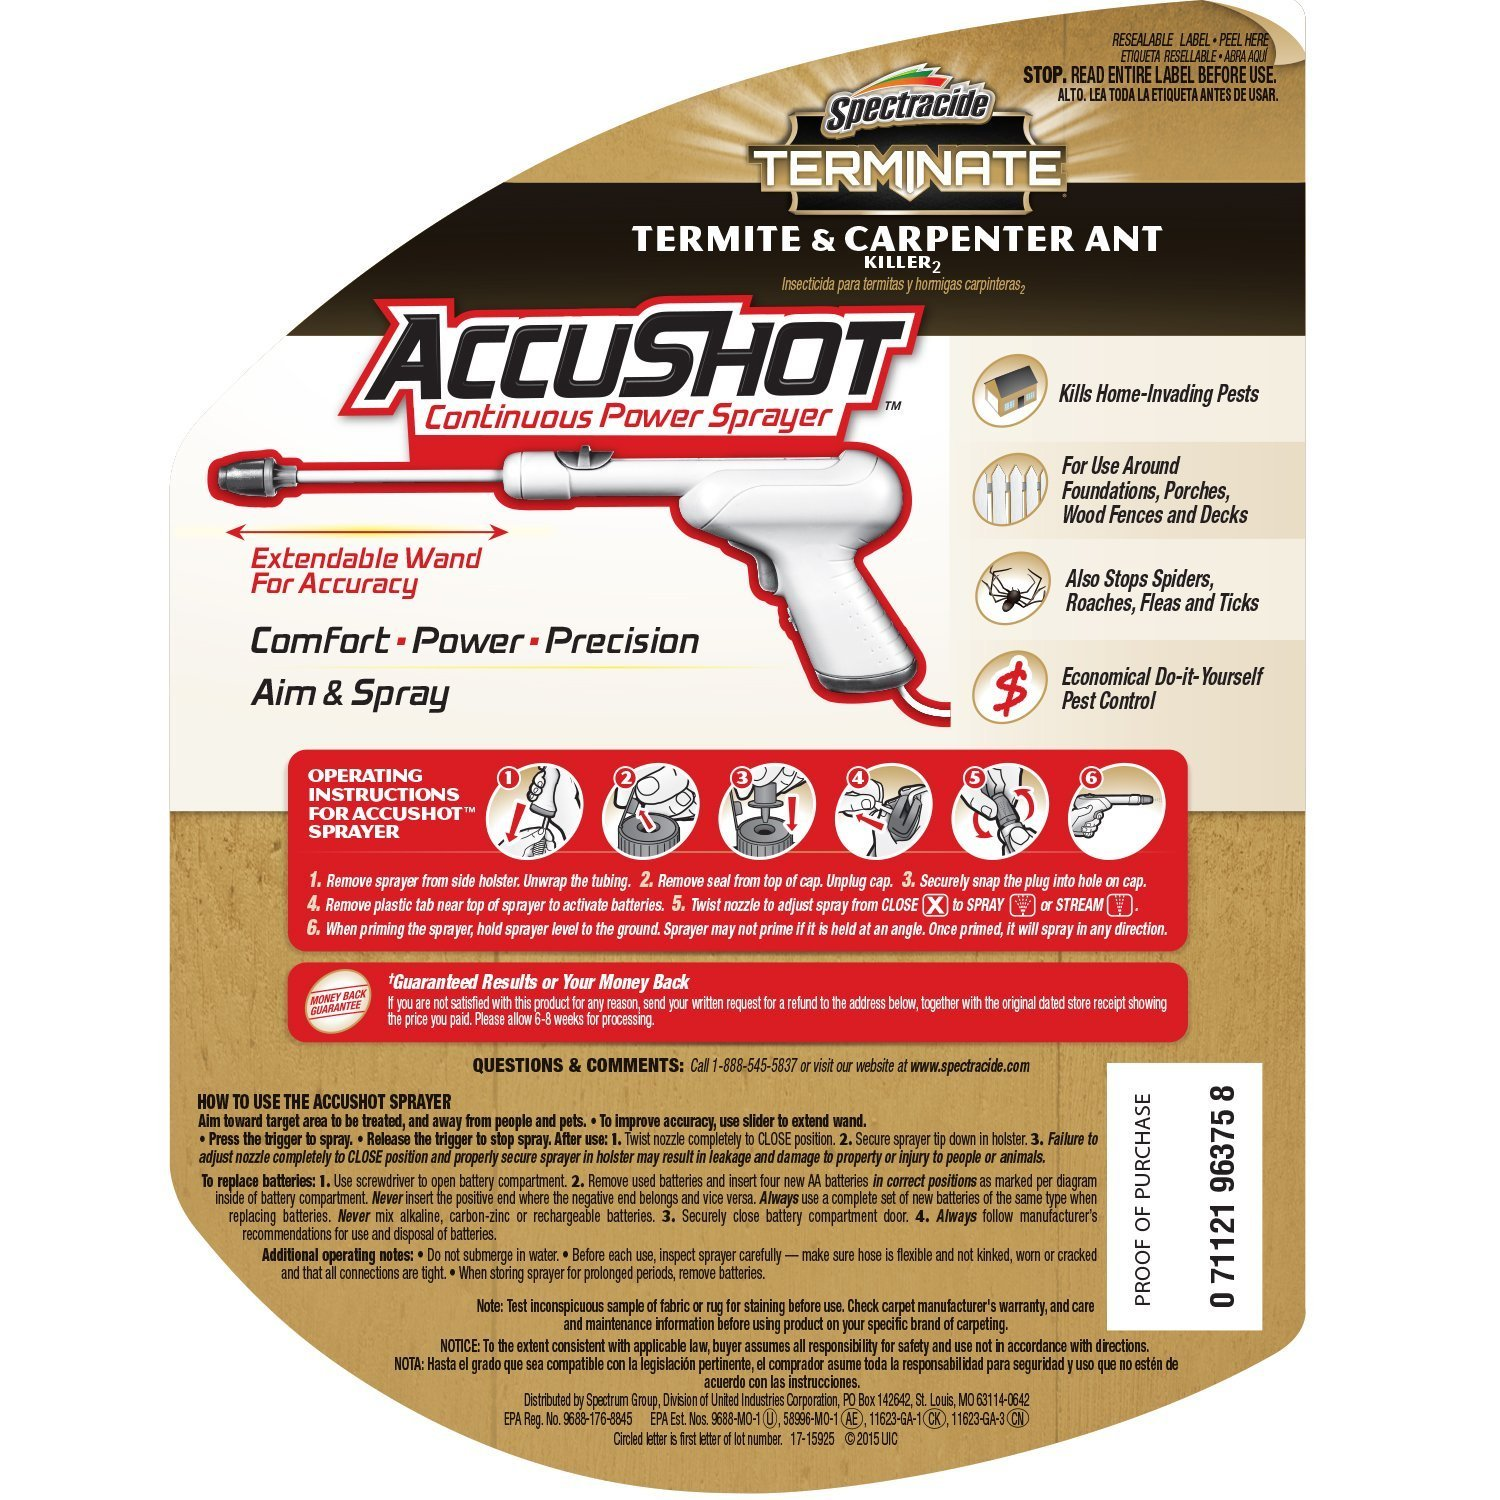 Spectracide Terminate Termite & Carpenter Ant Killer2 (AccuShot Sprayer) (HG-96375) (Pack of 4) by Spectracide